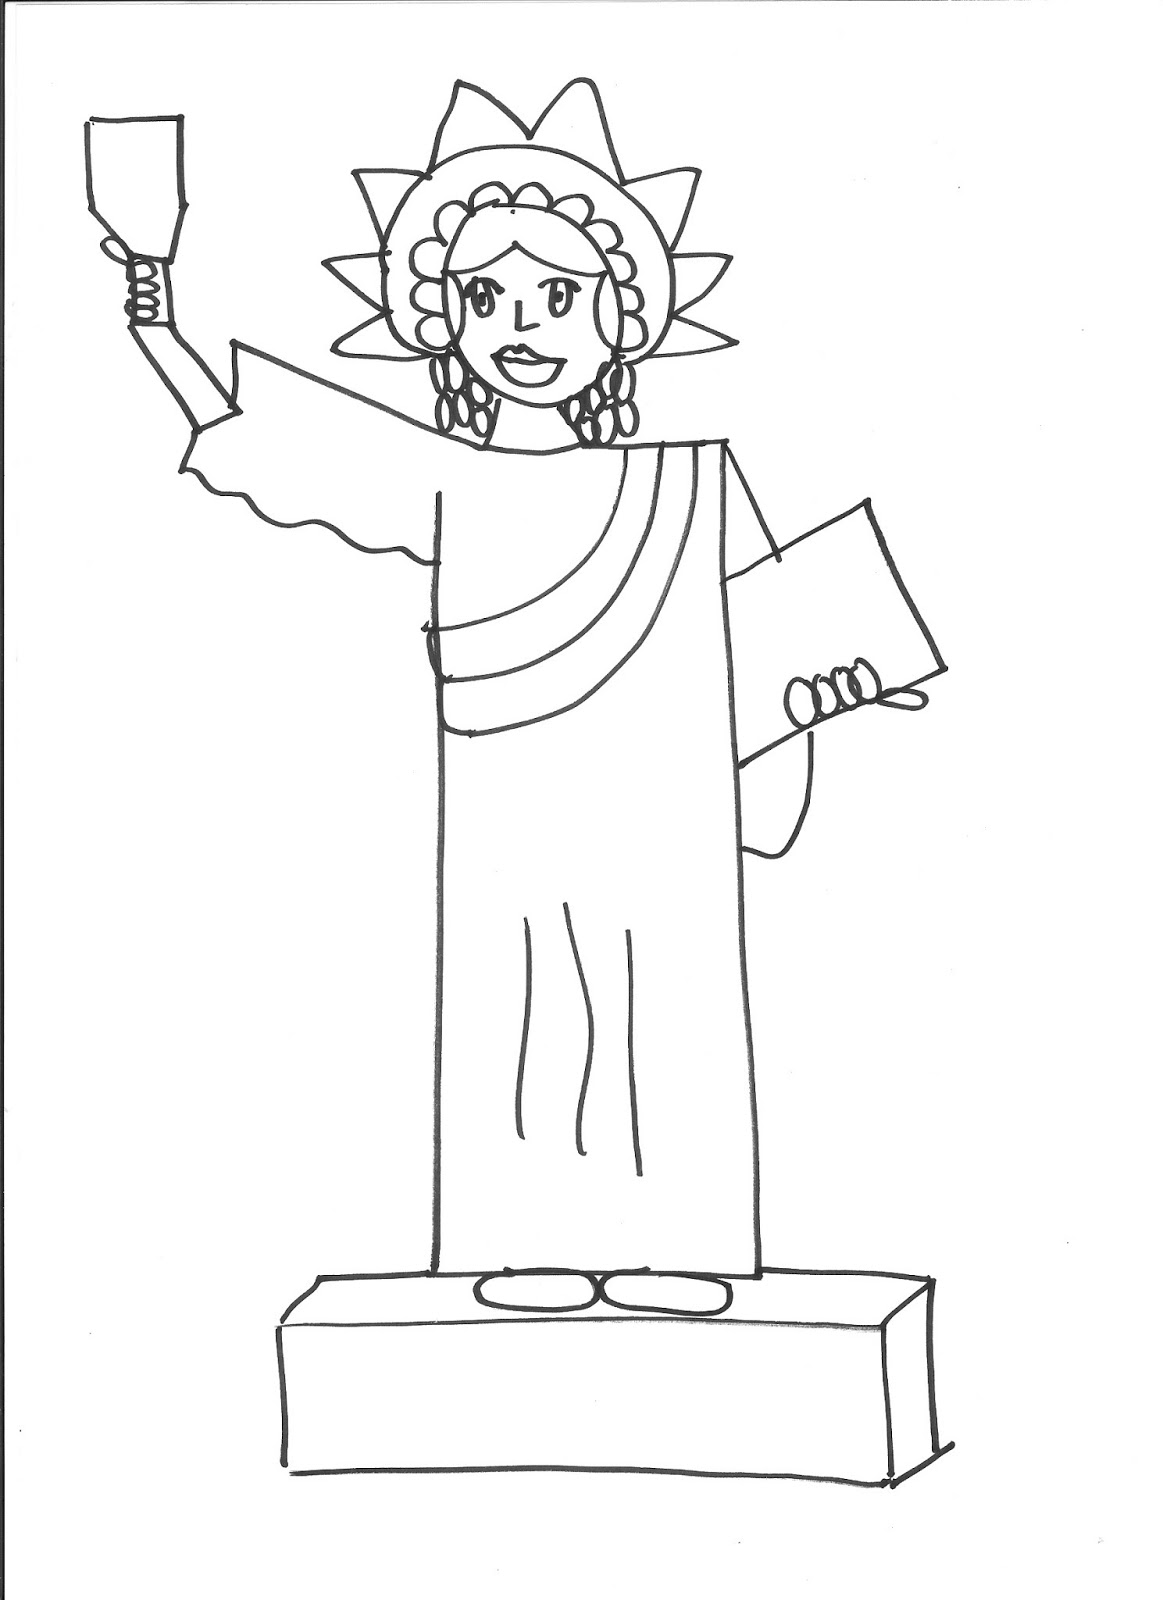 statue of liberty drawings how to draw the statue of liberty drawingforallnet drawings statue of liberty